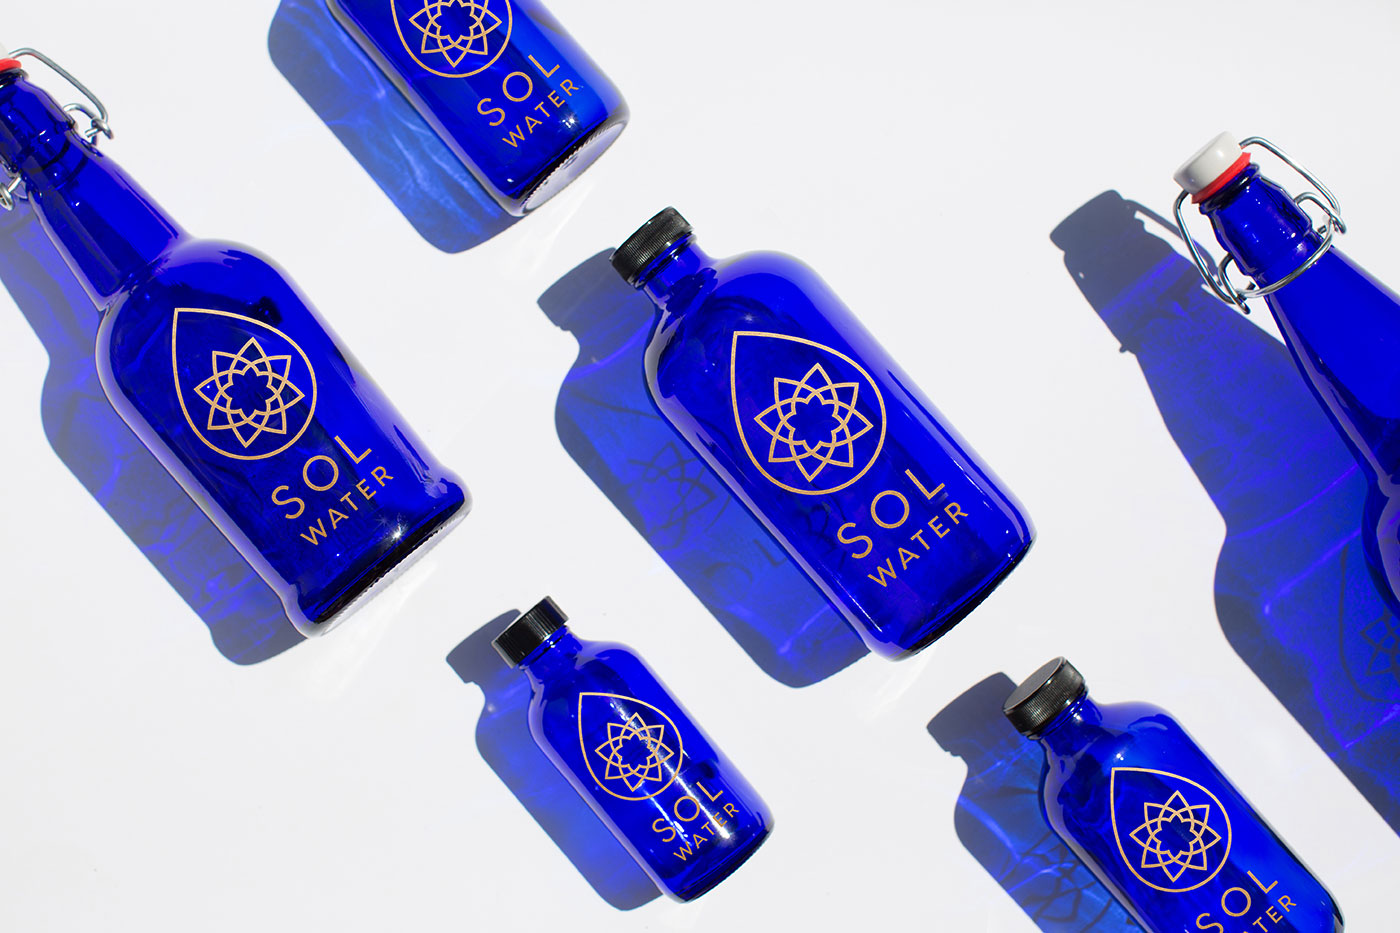 Outfit Branding & Design Sol Water Bottles